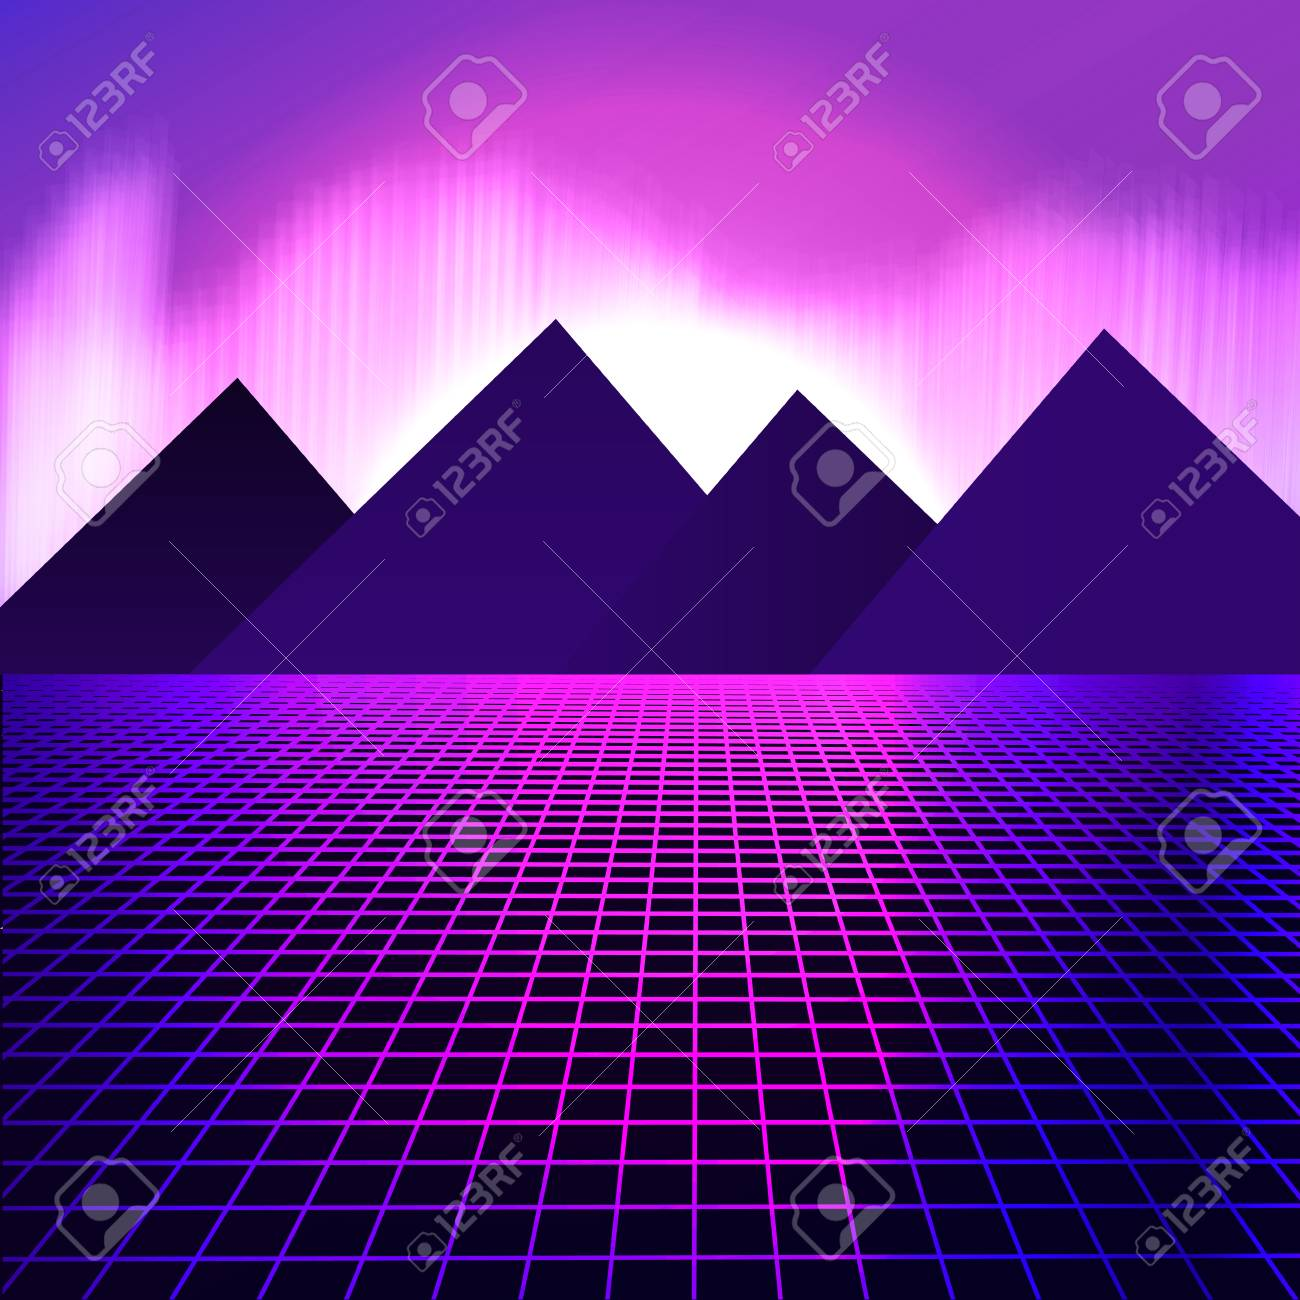 mountains on a background of pink neon lights vector illustration